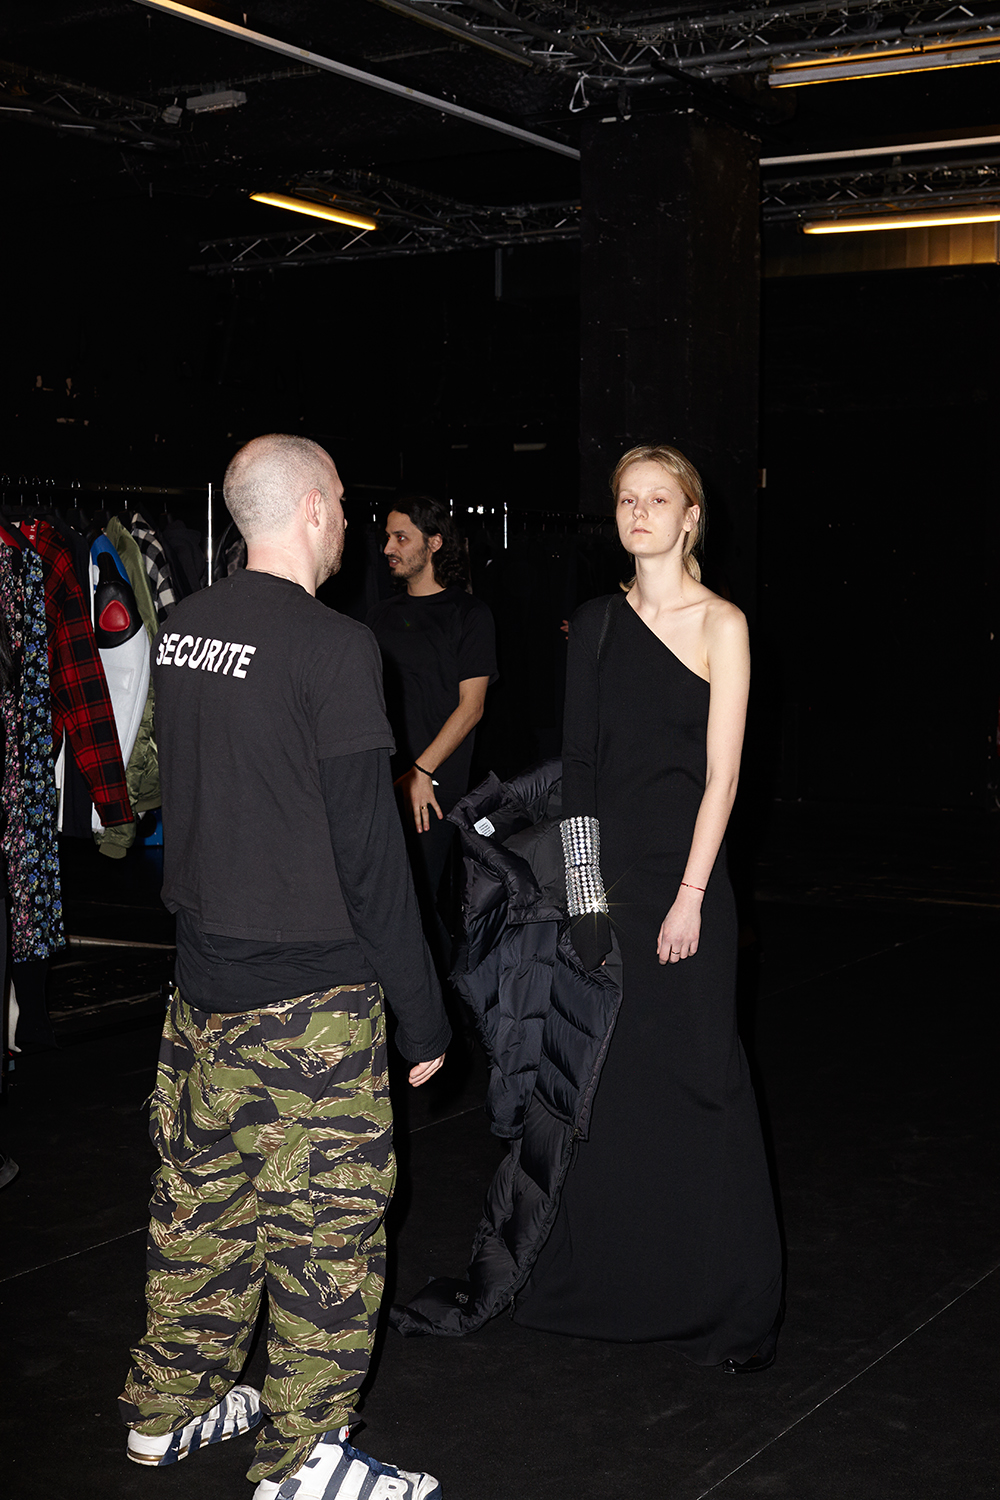 Demna Gvasalia with model, Vetements, Paris Yahoo Style March 2015